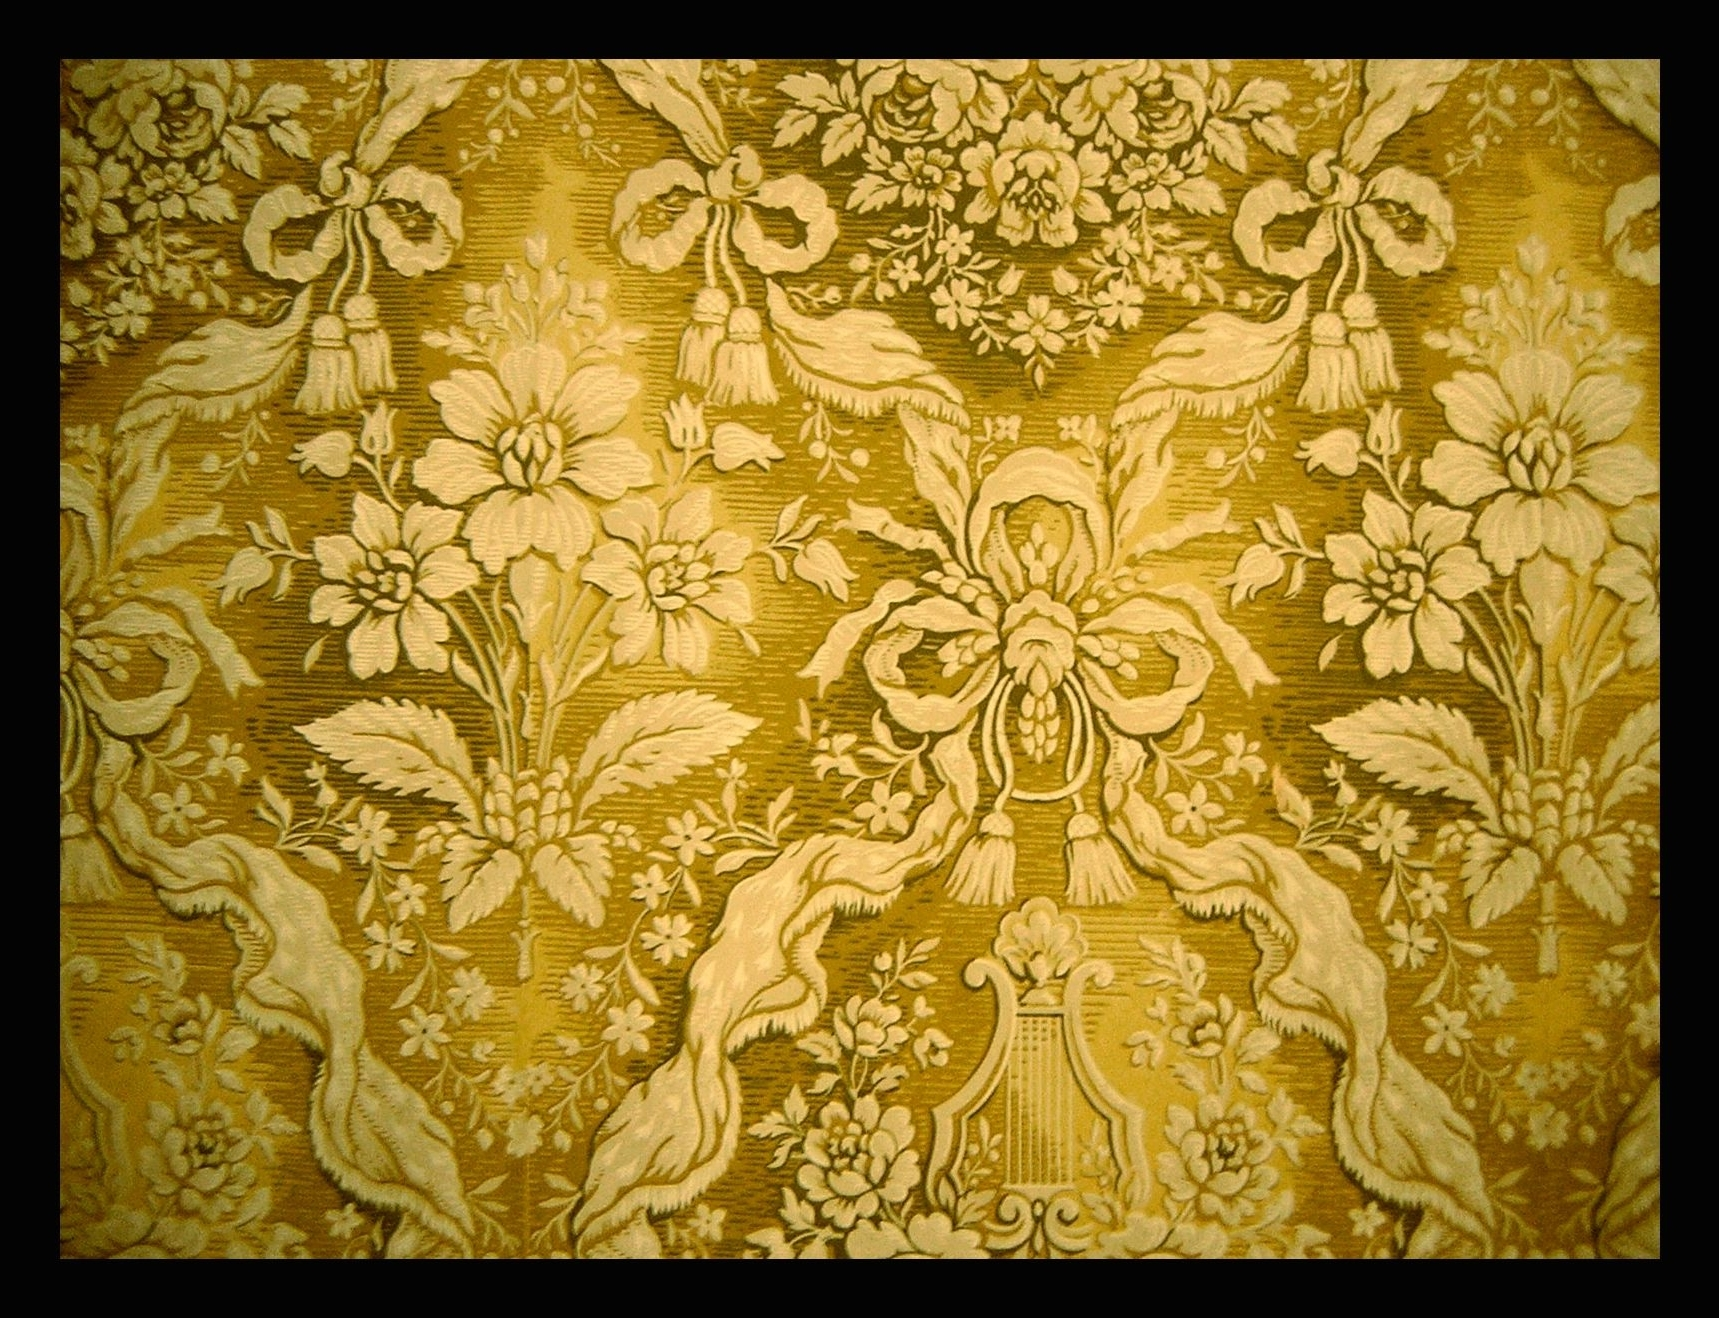 Trendy Palace Wall Texture #gold #ornate #fabric #textured (View 10 of 15)